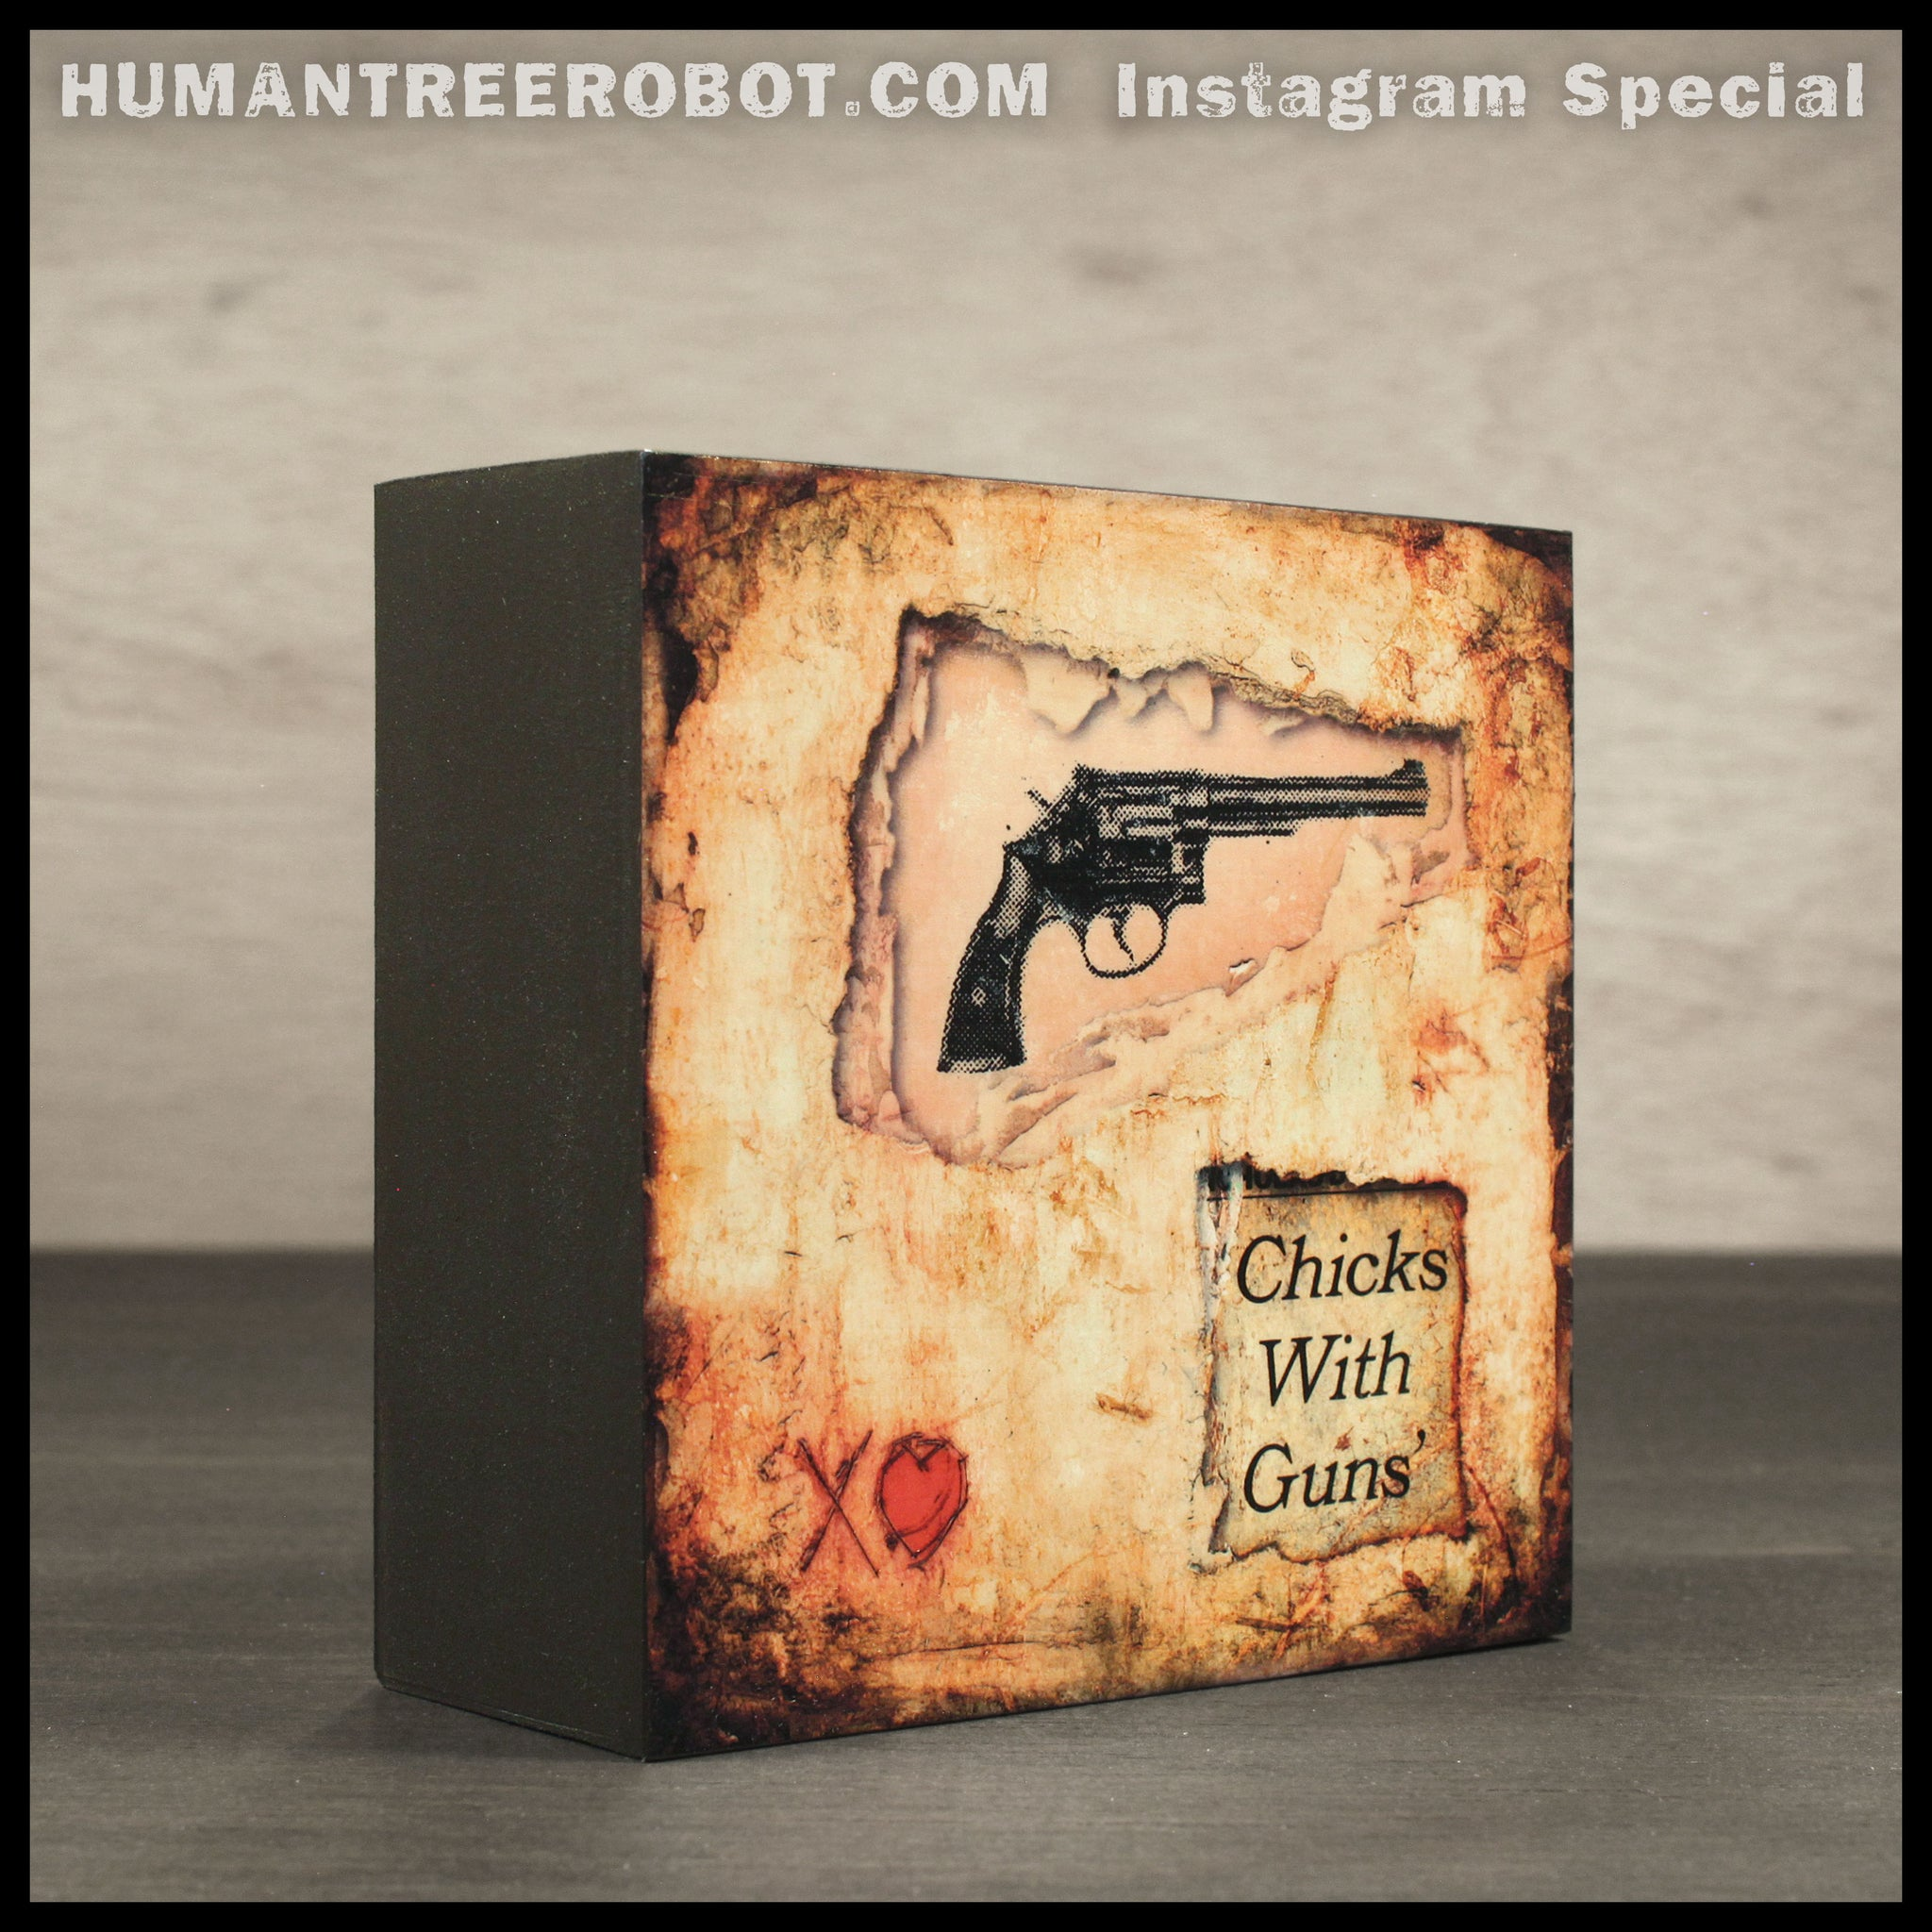 Instagram Special - 4x4 Wood Panel Print - Chicks With Guns